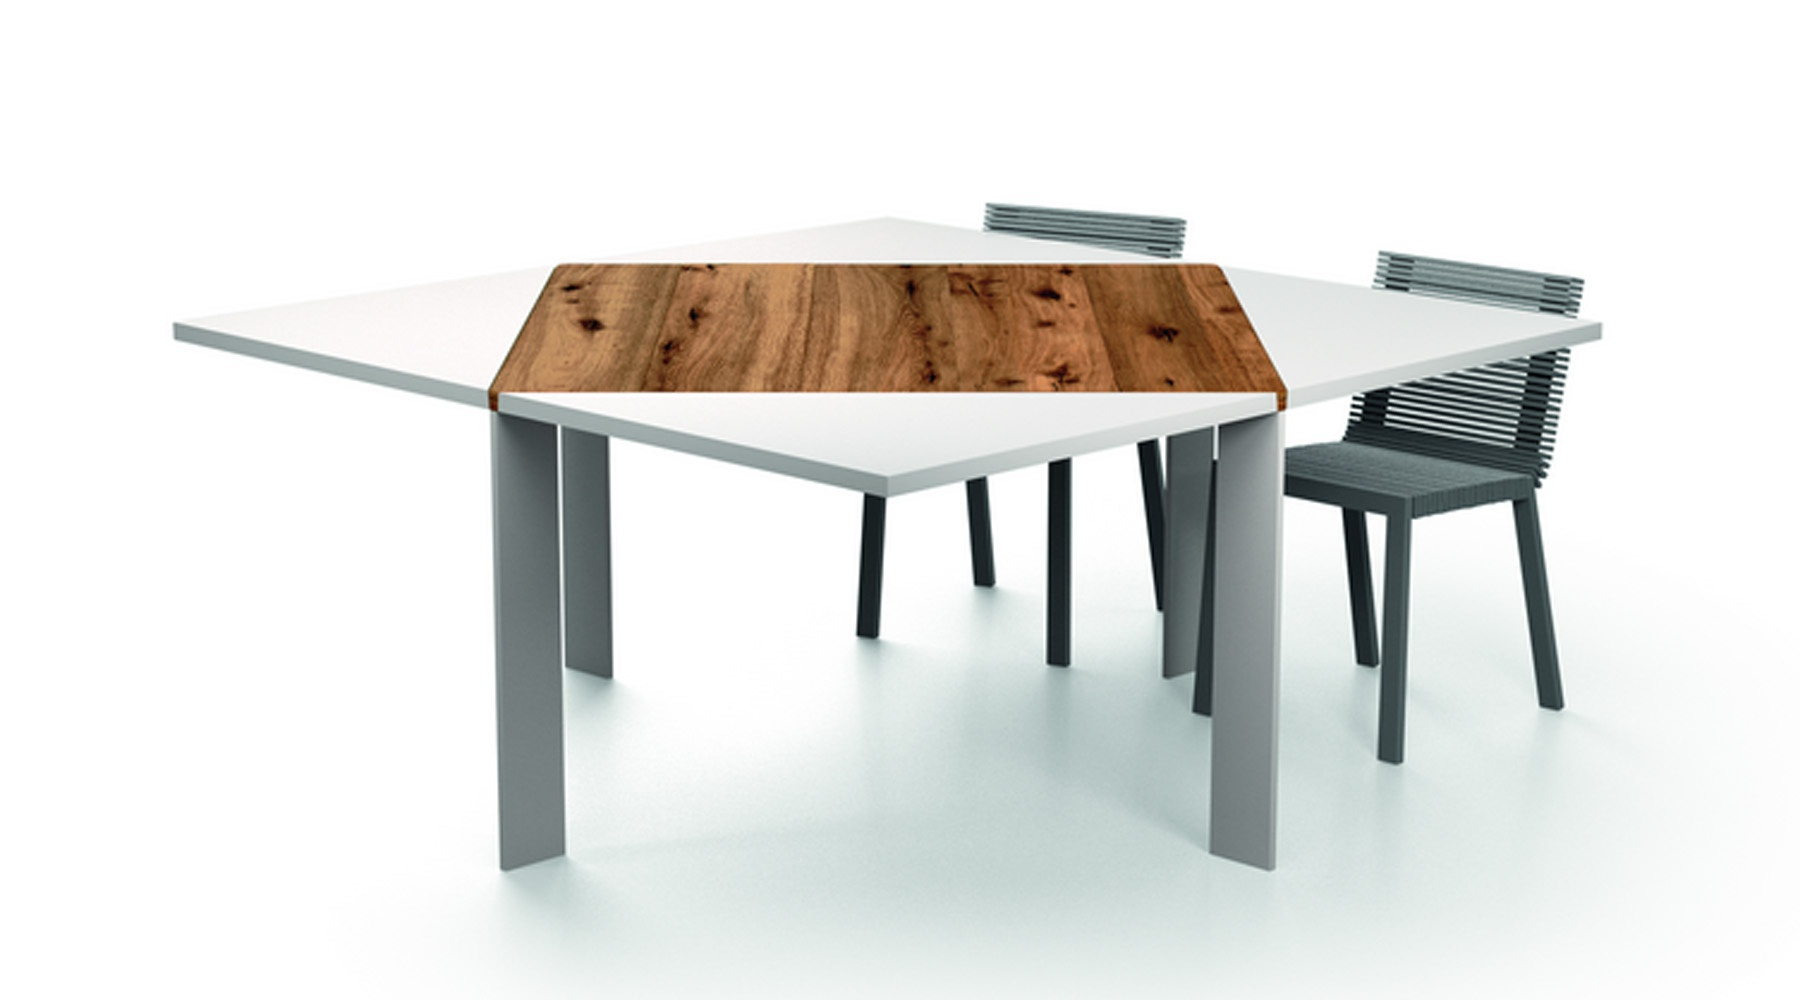 The loto table with square top made of wood lago luxury for Lago furniture